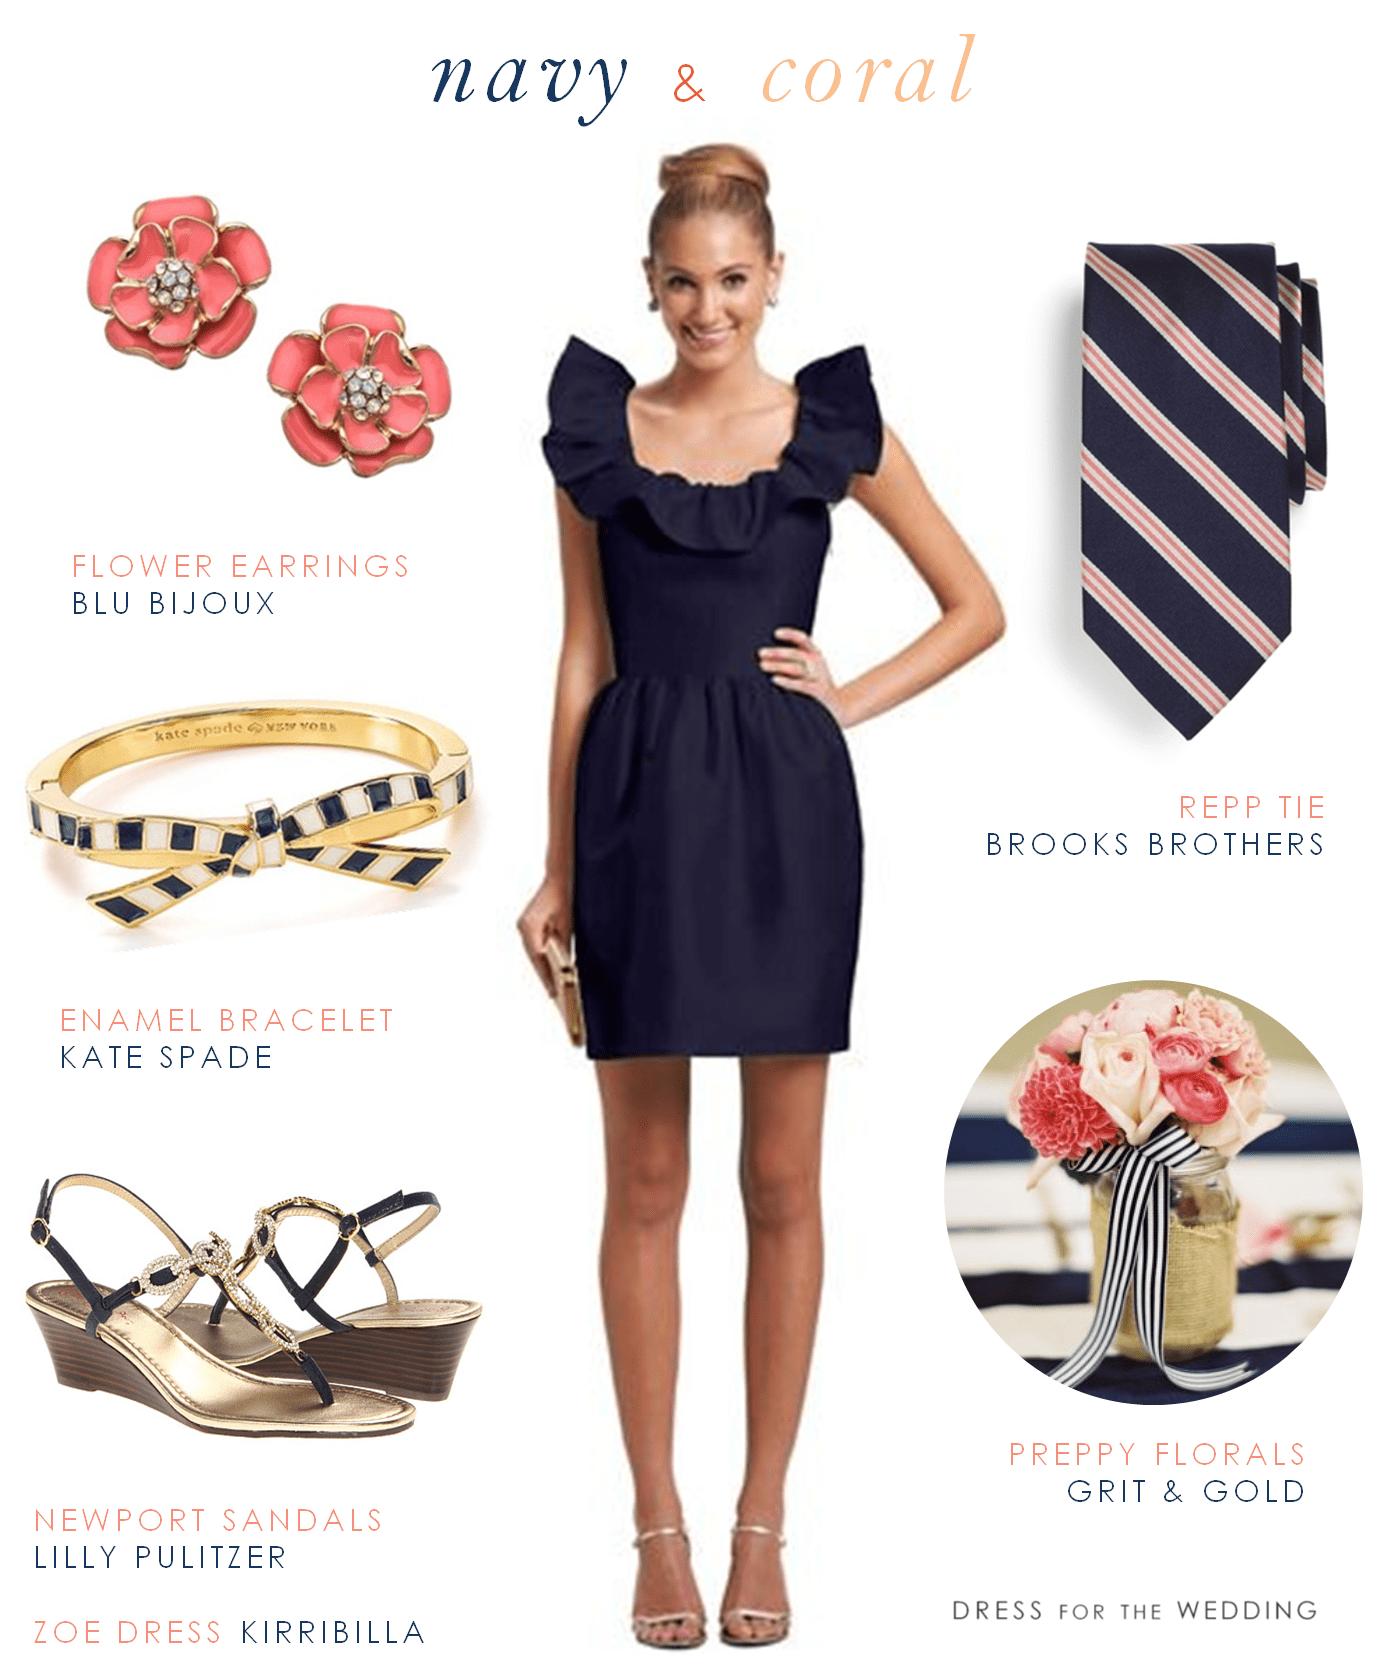 Preppy bridesmaid dress archives navy and coral nautical preppy wedding look ombrellifo Images